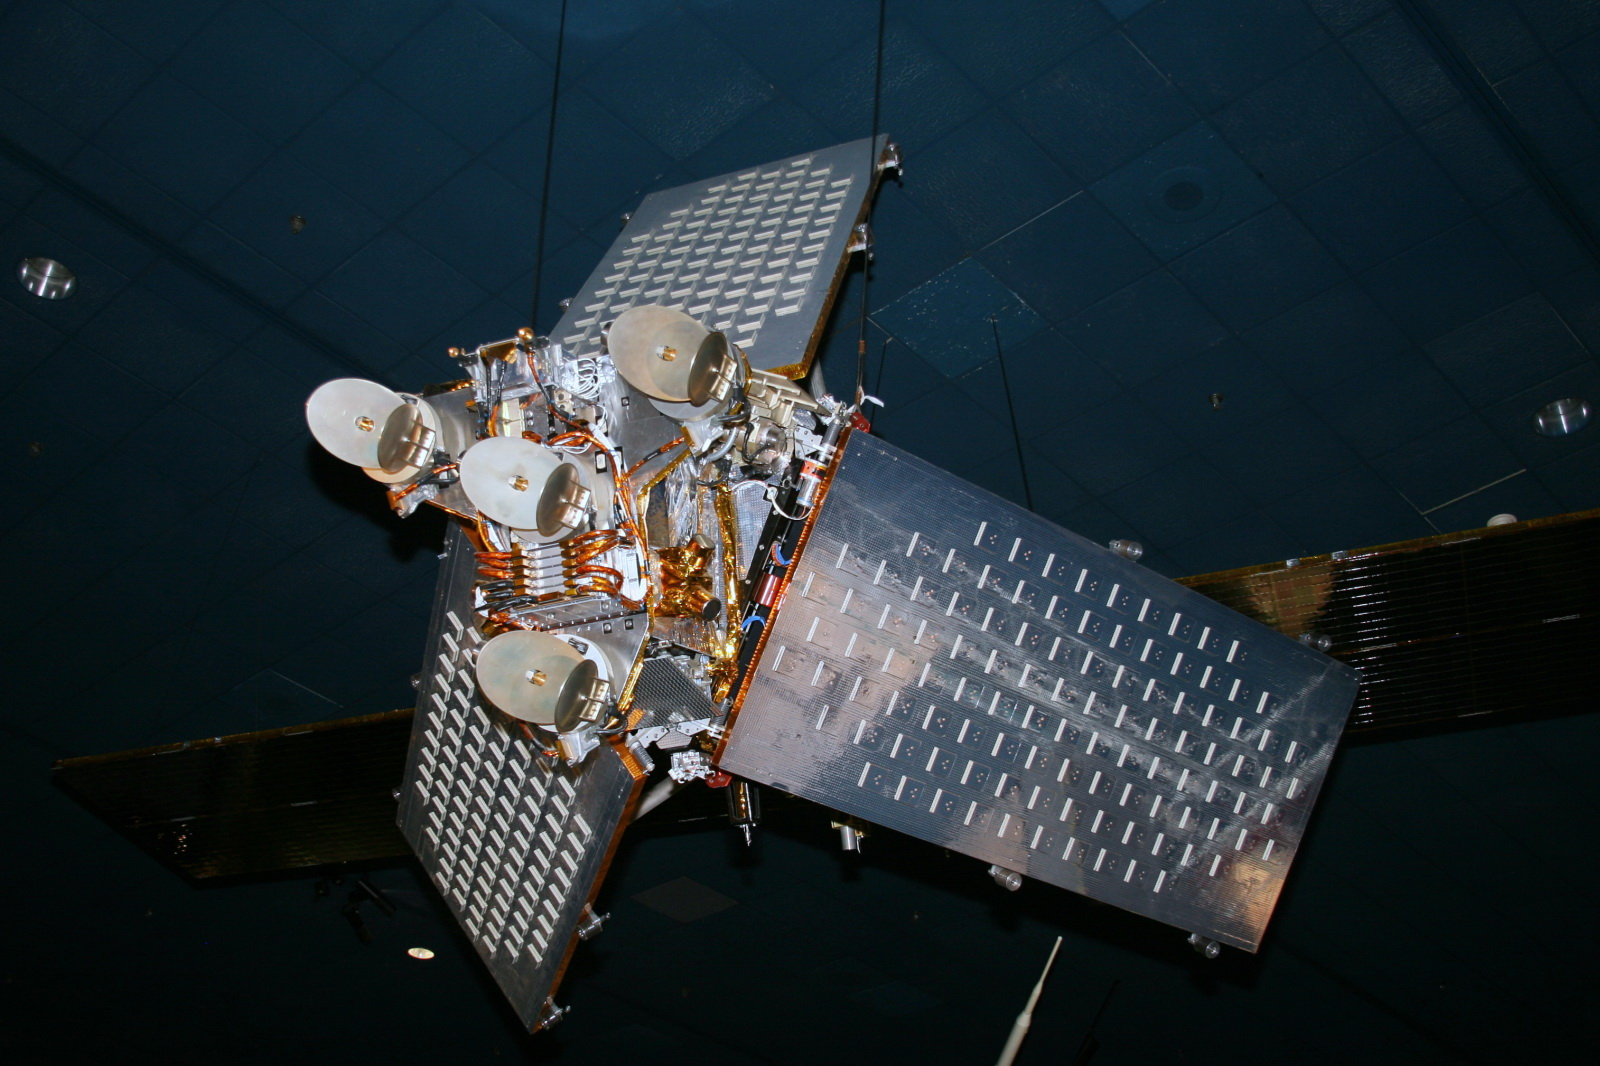 File:Iridium Satellite.jpg - Wikipedia, the free encyclopedia